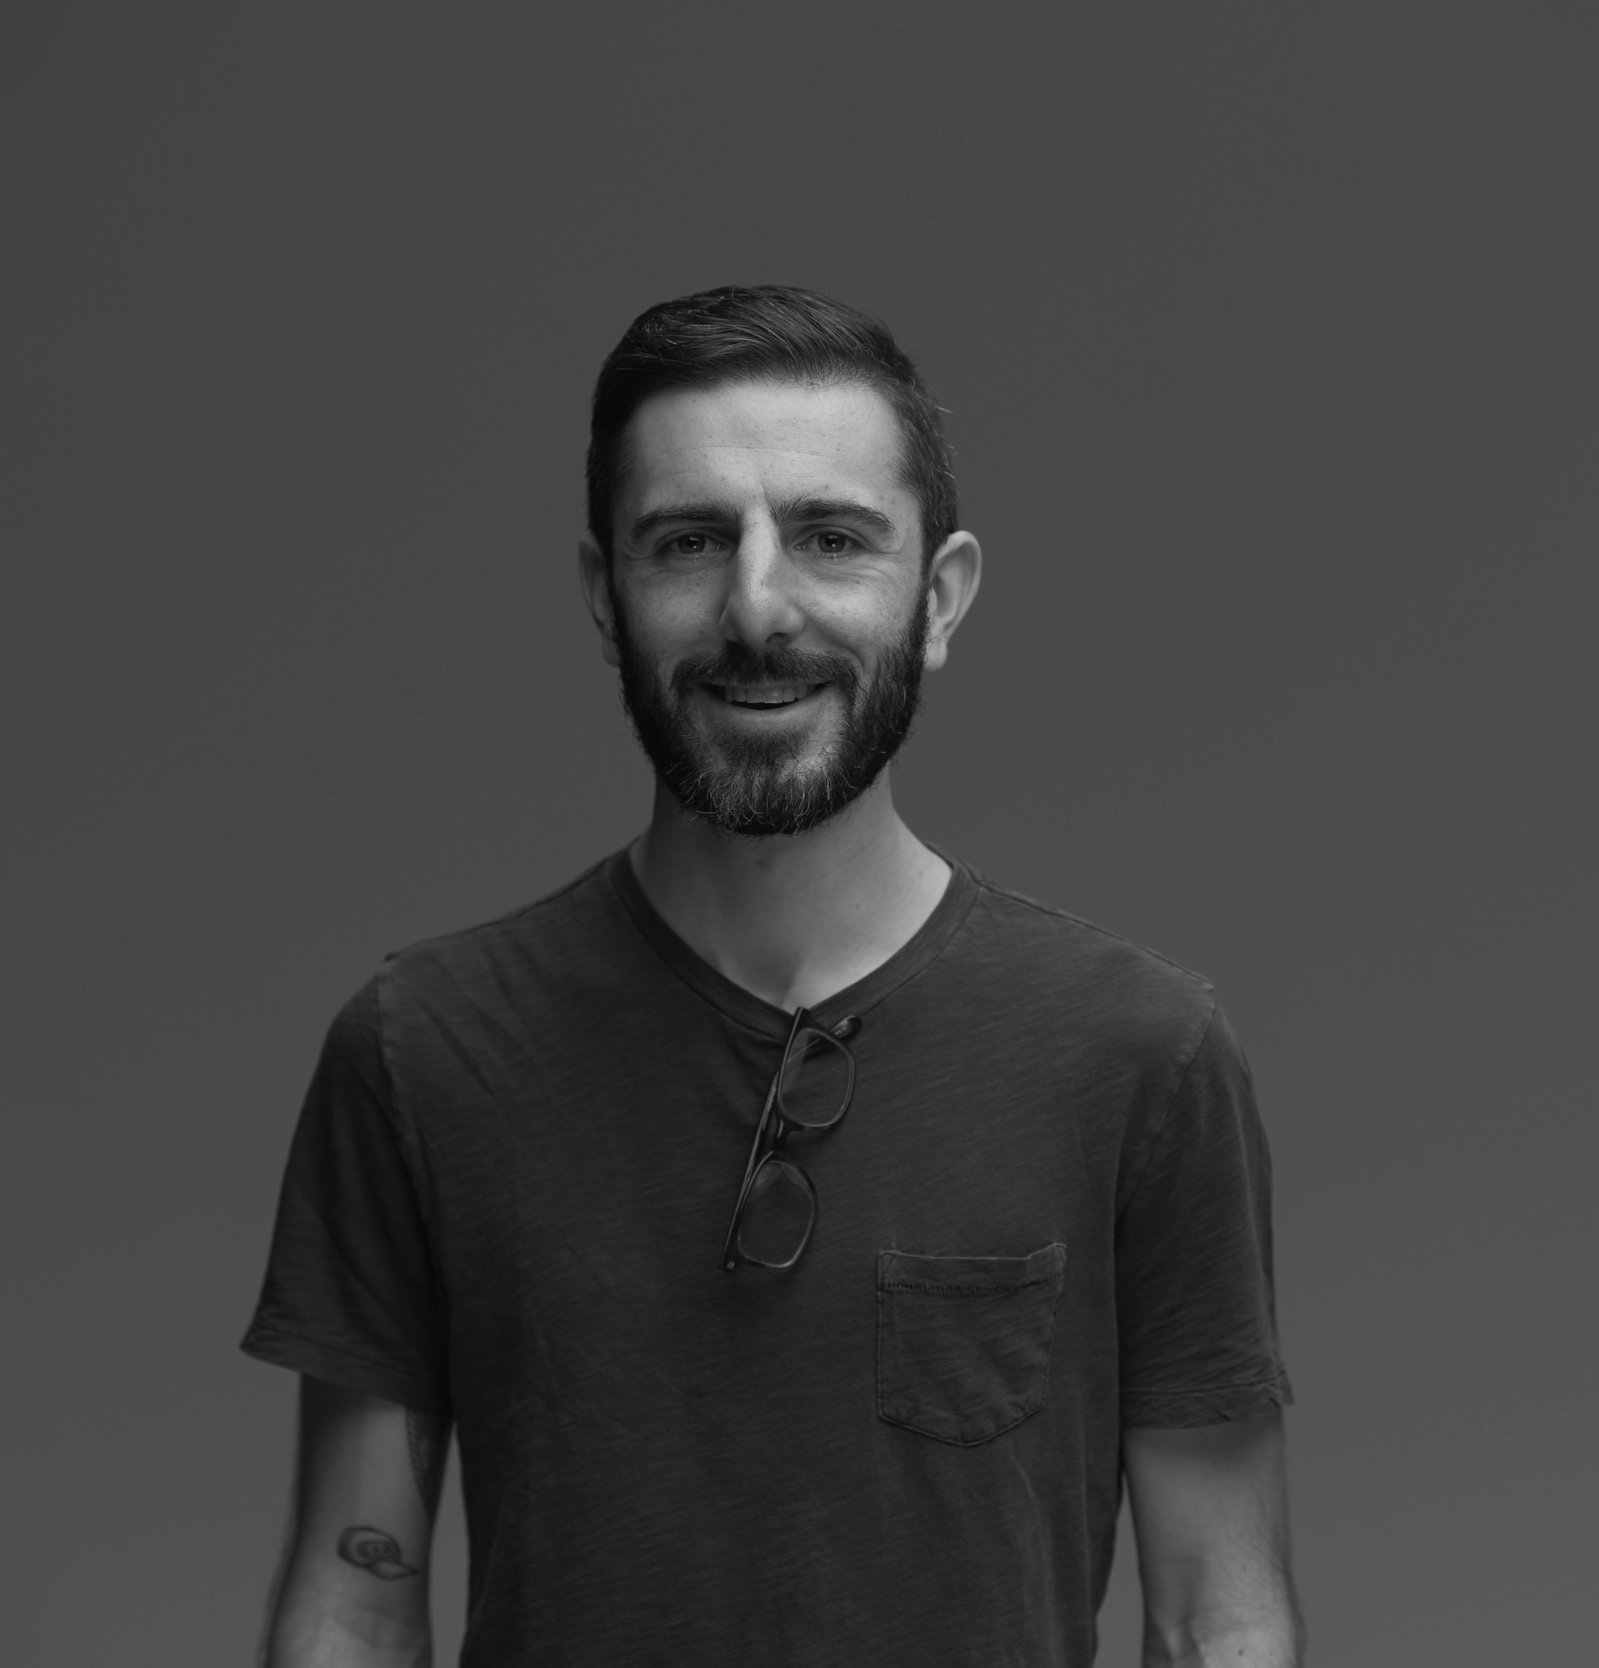 - Ben is a Creative Producer based in Brooklyn.He produces for agencies, production companies, and independently. Loves talking in third person.Fluent in social content, commercial, film, and reality/doc production models.Hiker, distance runner, and weekend photographer.benhassey@gmail.com